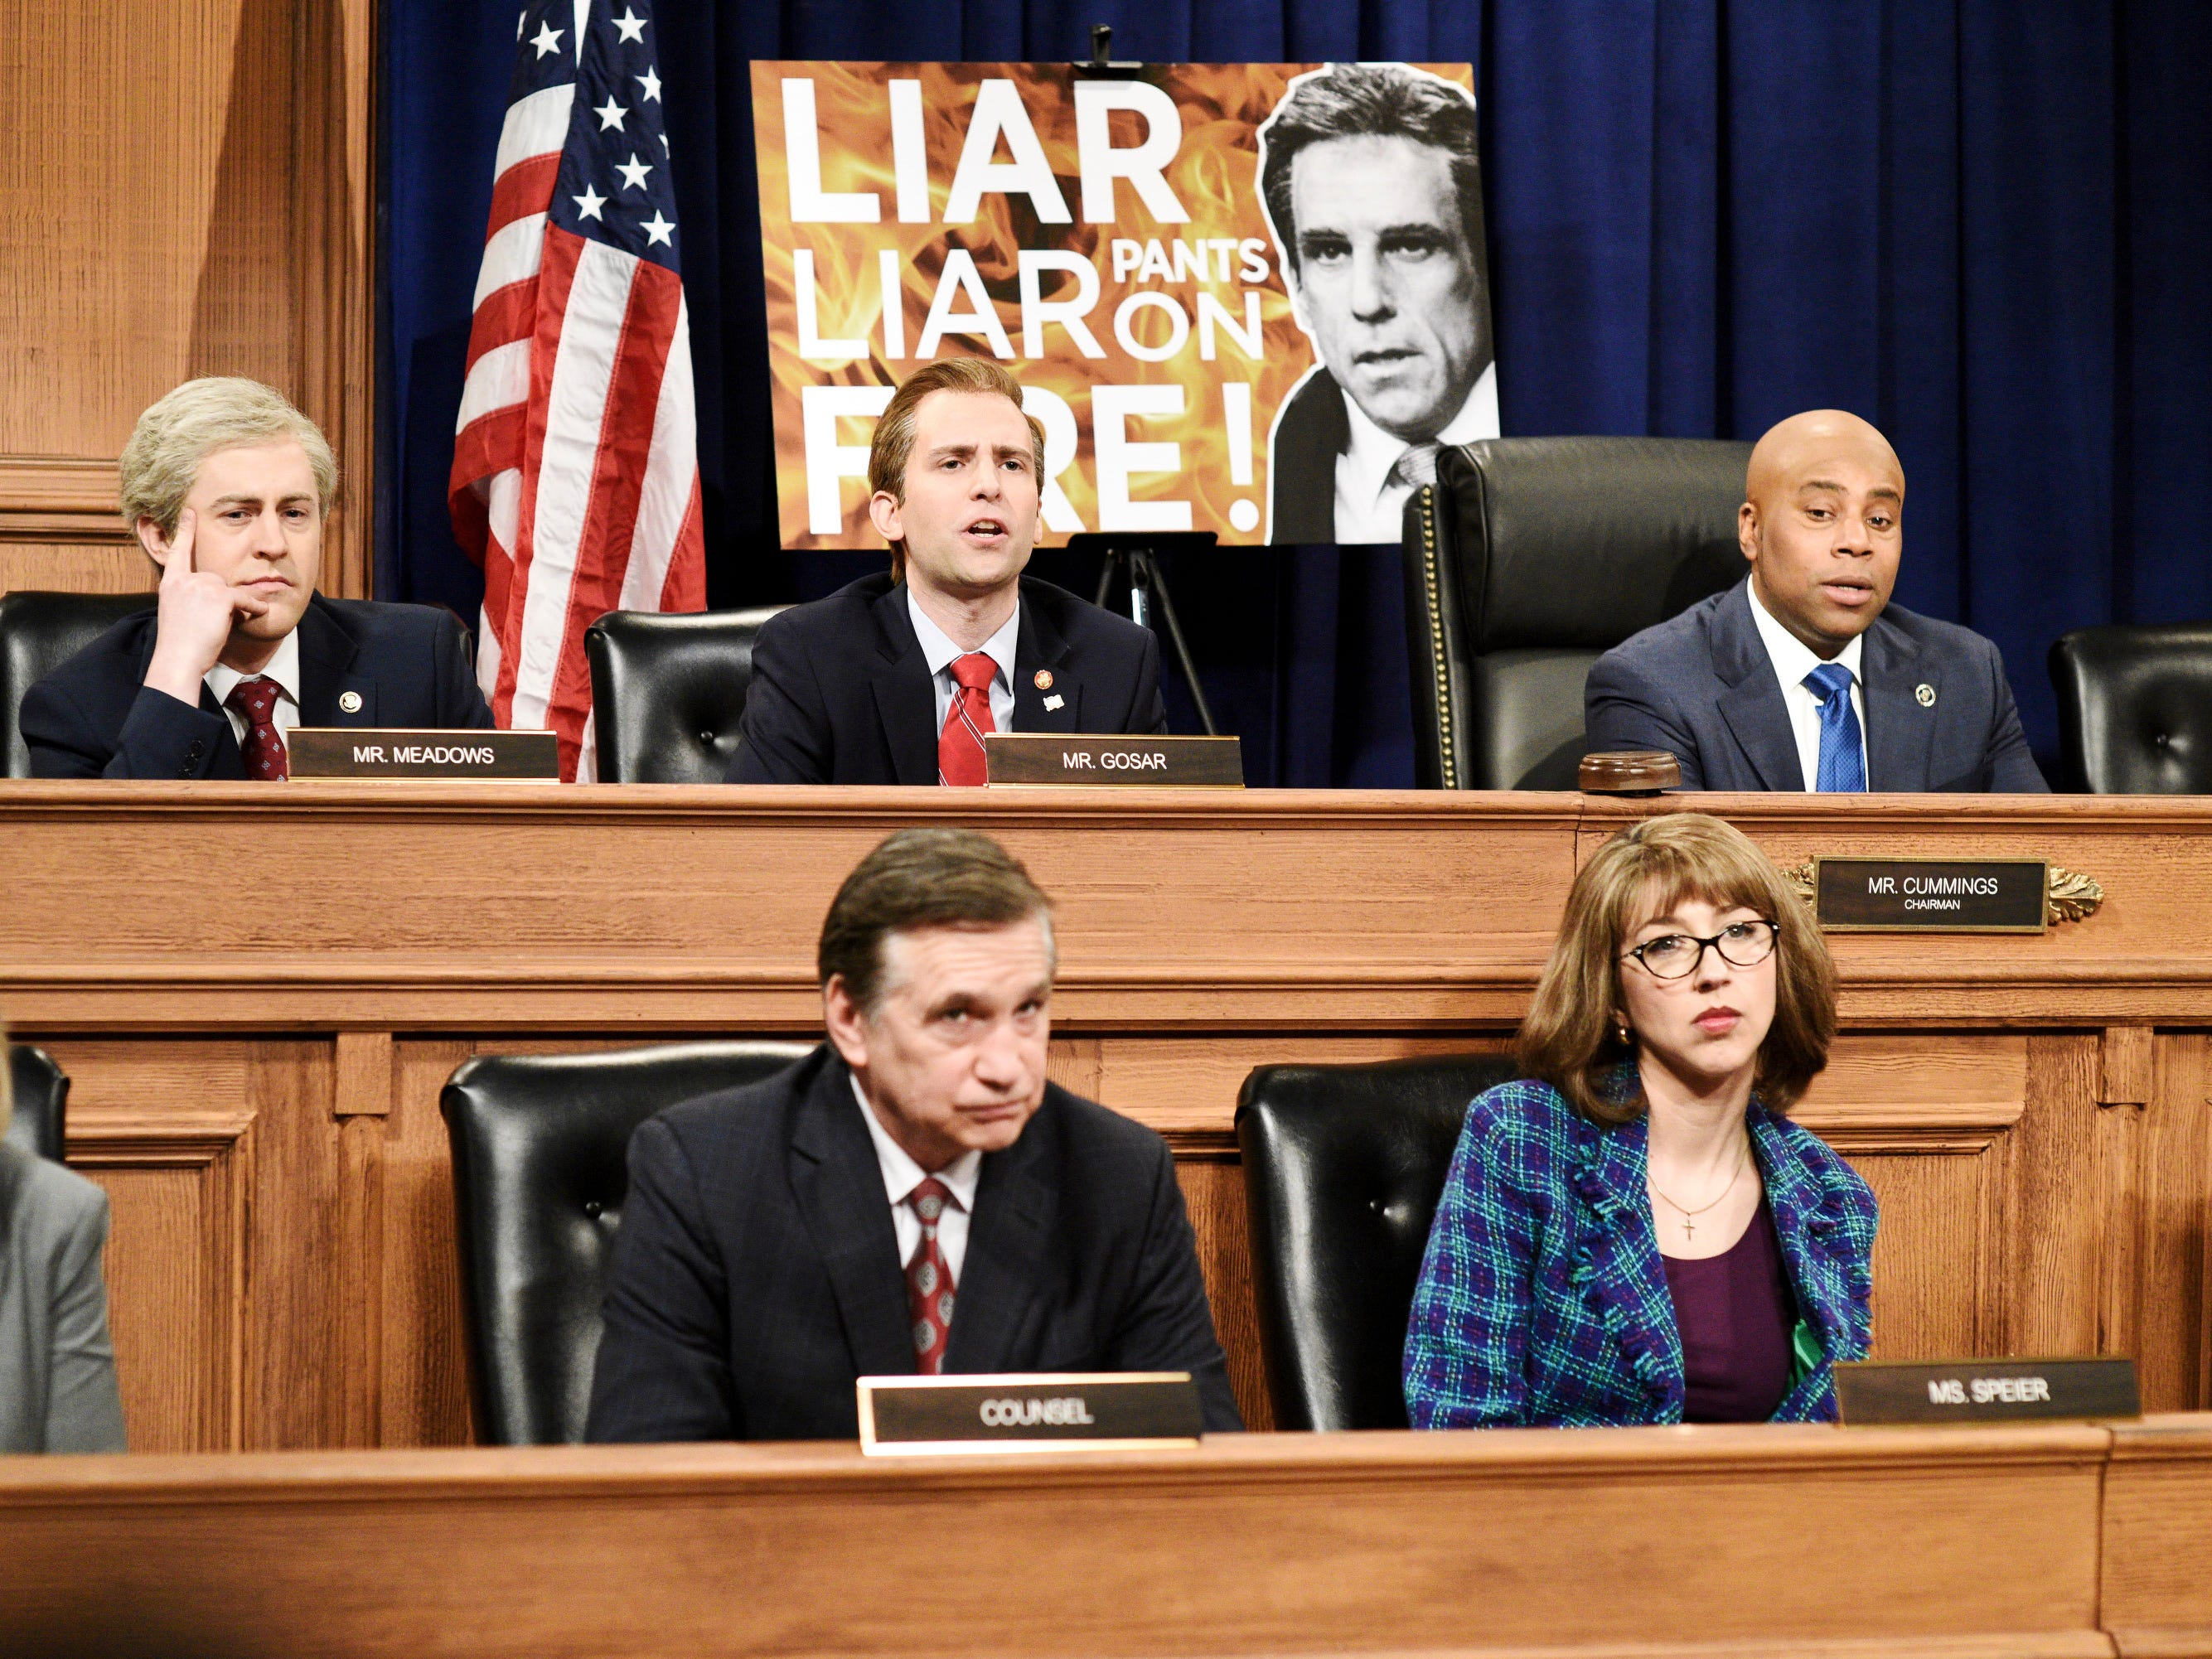 "After hearing from Arizona Republican Paul Gosar (Kyle Mooney, top center), who garbled his entire speech, and North Carolina's Mark Meadows (Alex Moffat top left), who confused Lynne Patton, a black female Trump staffer, with Omarosa, committee chair Elijah Cummings of Maryland (Kenan Thompson, top right) ended questioning so he could ""give a quick sermon and call everyone in this room a fool."""